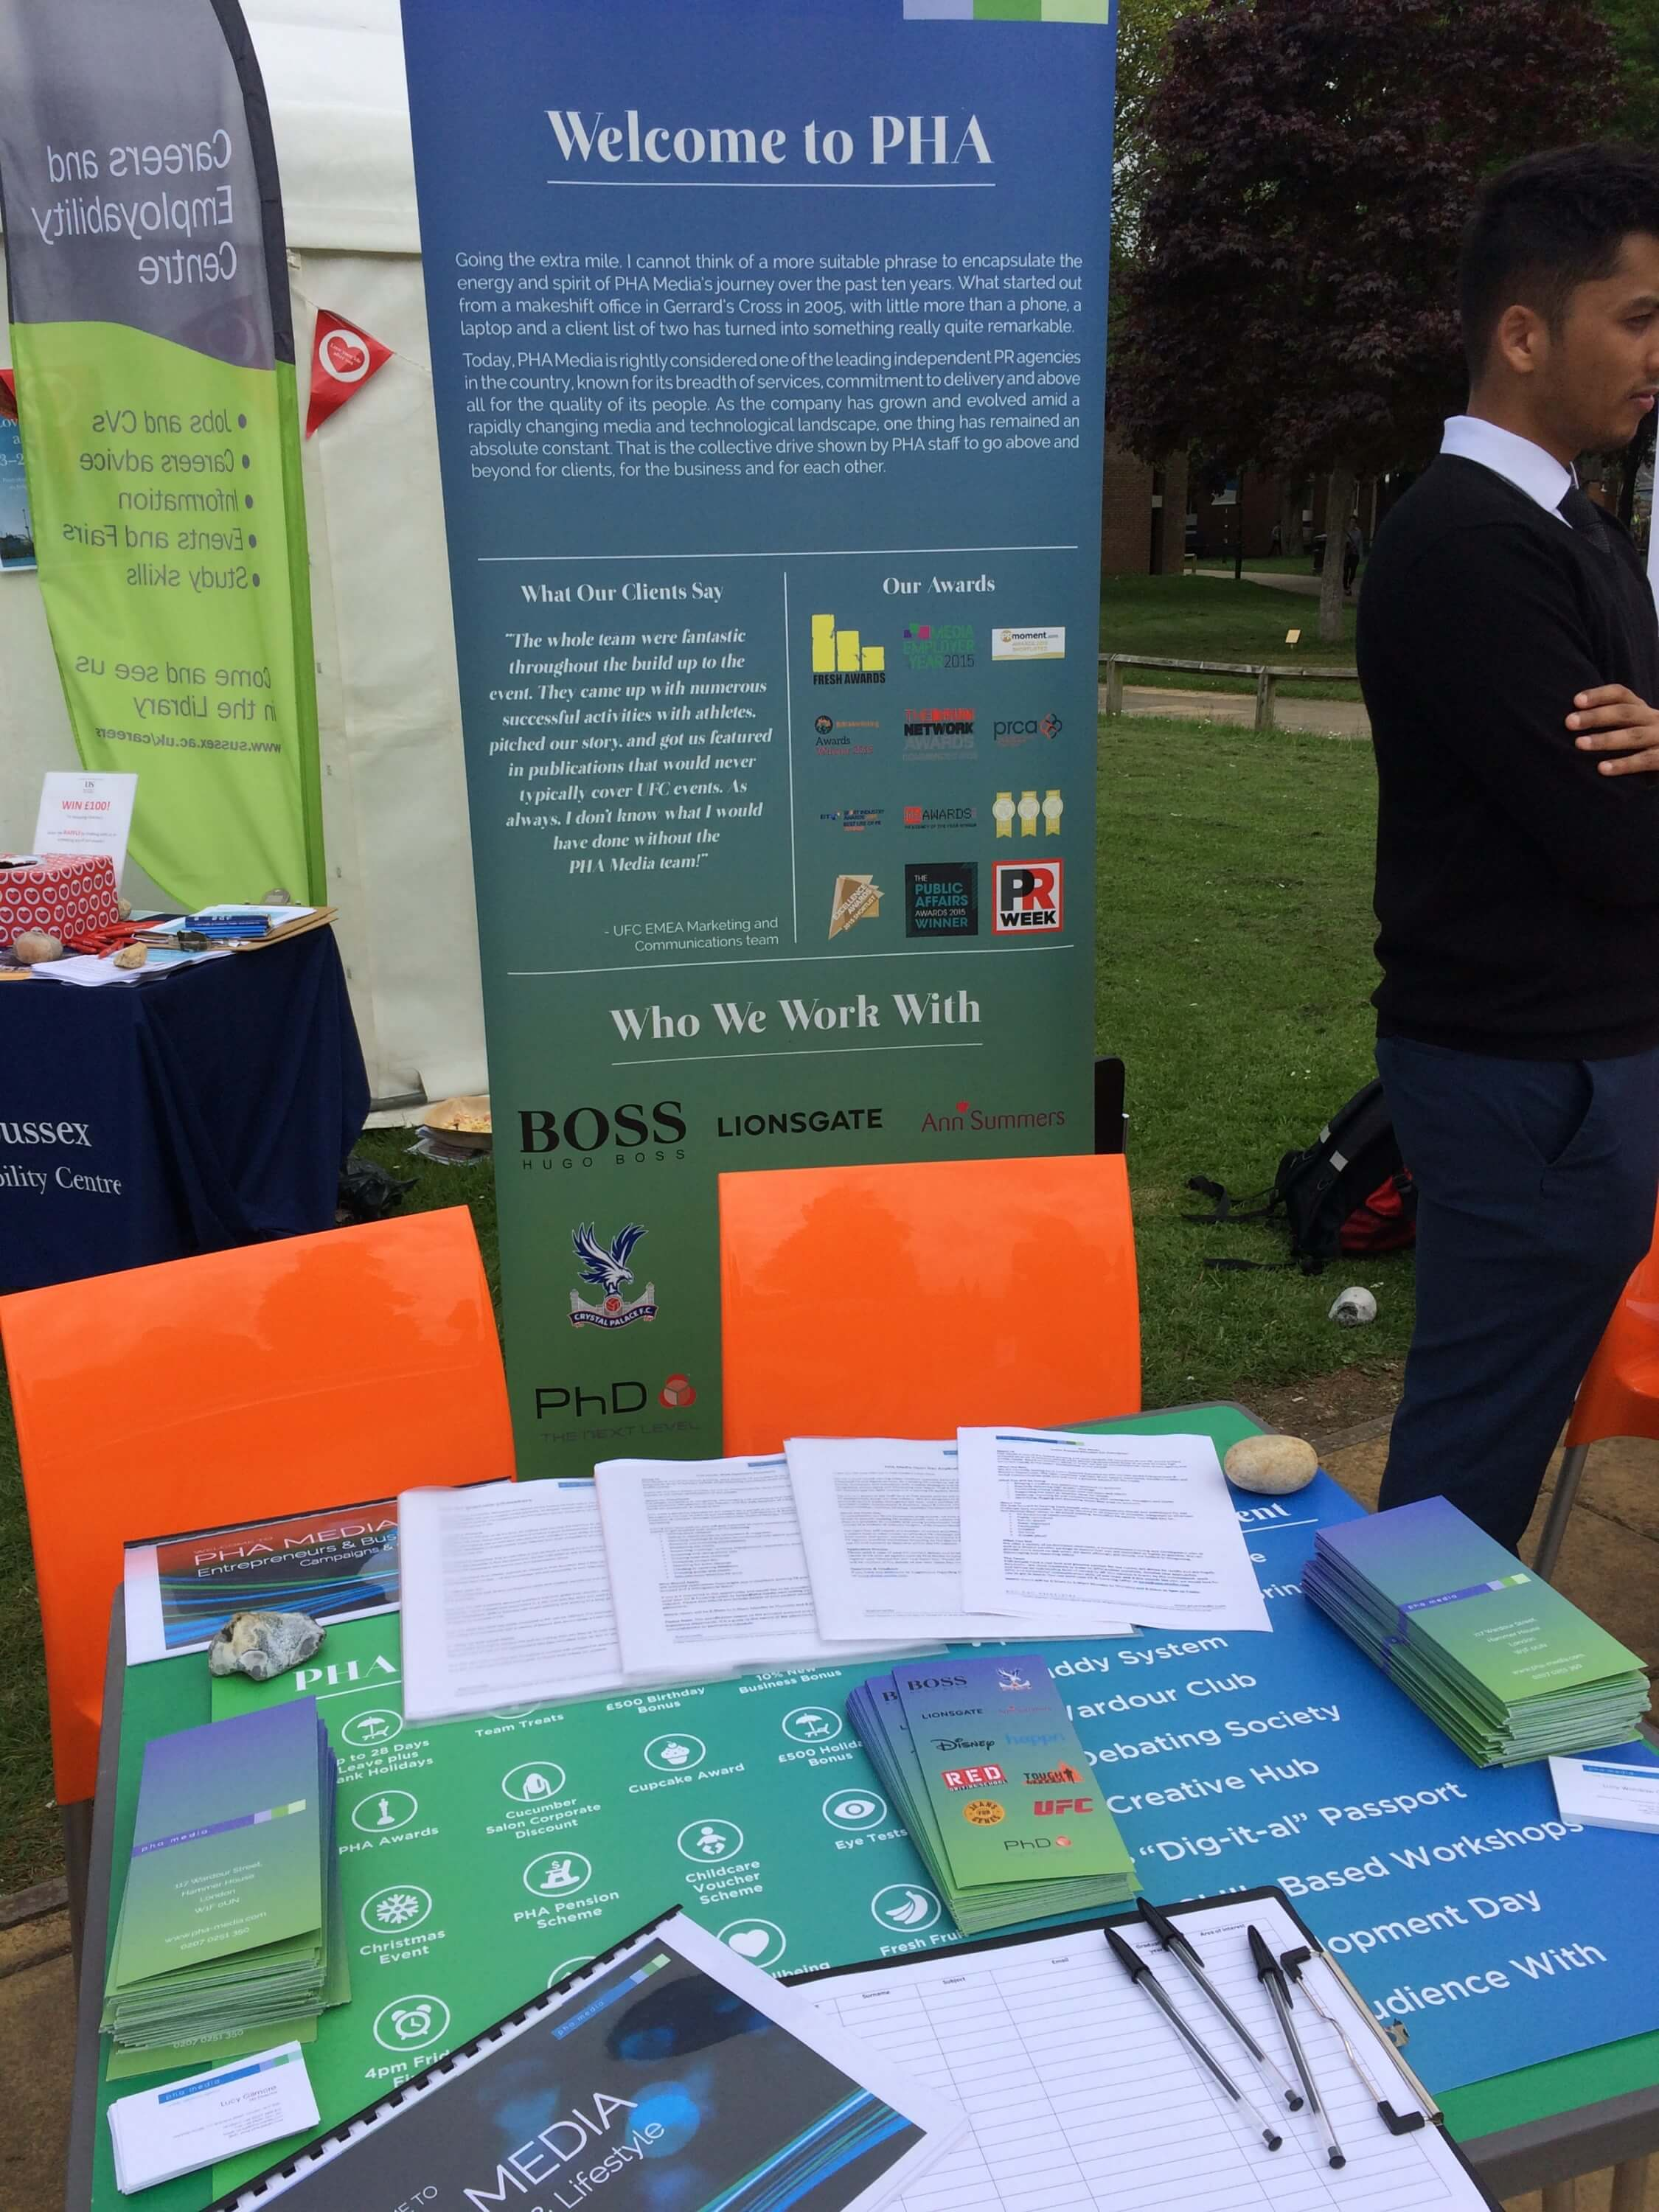 The PHA Group's stand at The University of Sussex's Mini Careers Fair was filled with take away material on work opportunities and career advice.